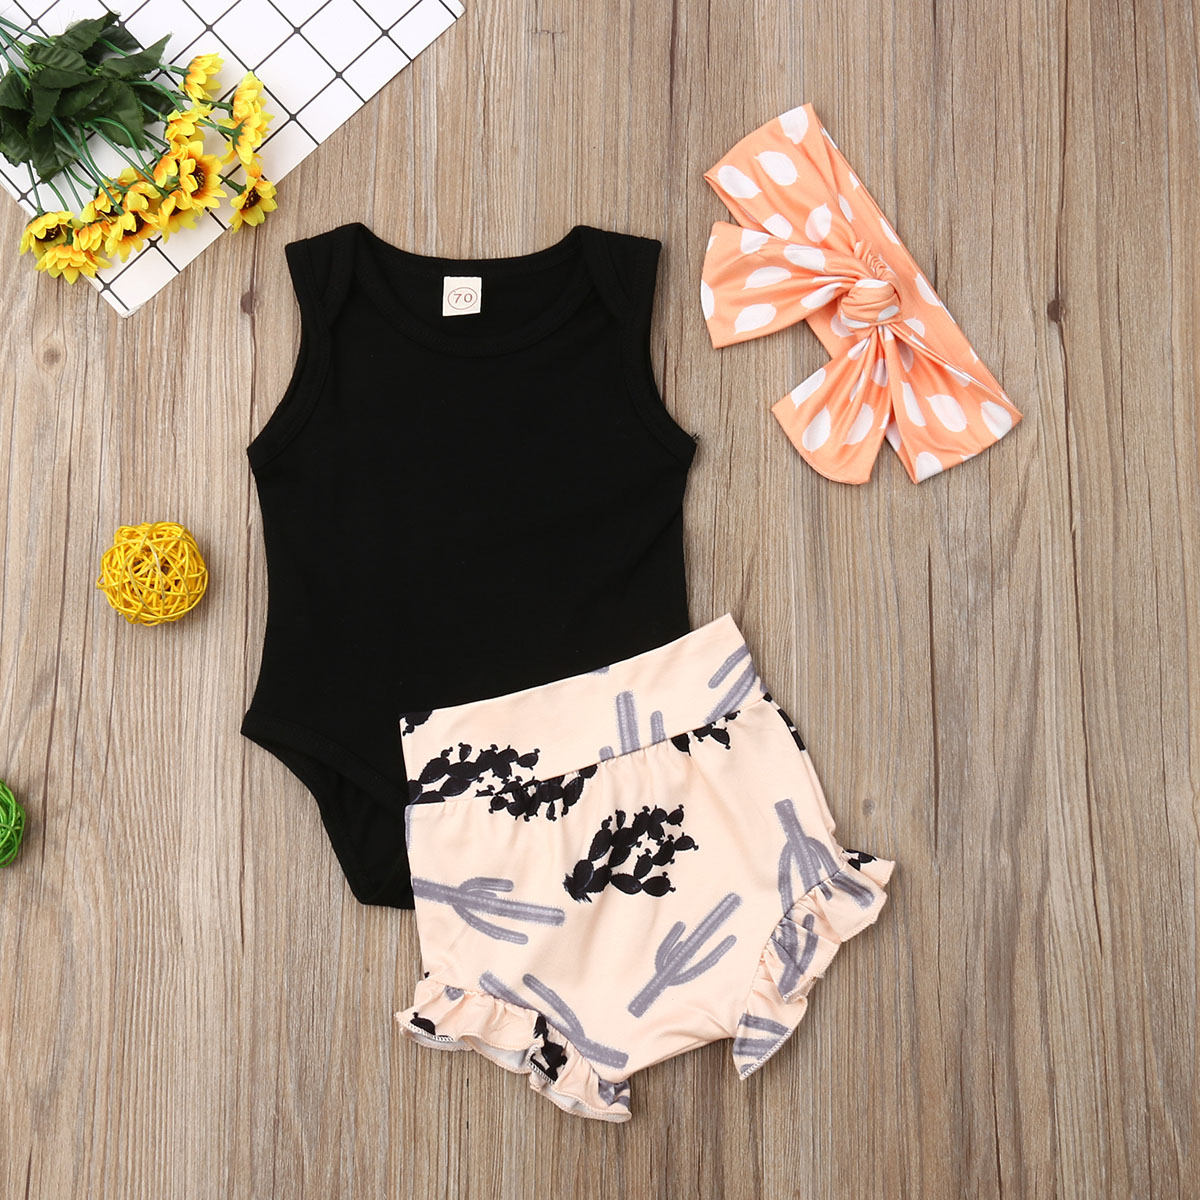 Pudcoco Newborn Baby Girl Clothes Sleeveless Solid Color Cotton Romper High Waist Shorts Headband 3Pcs Outfits Summer Clothes